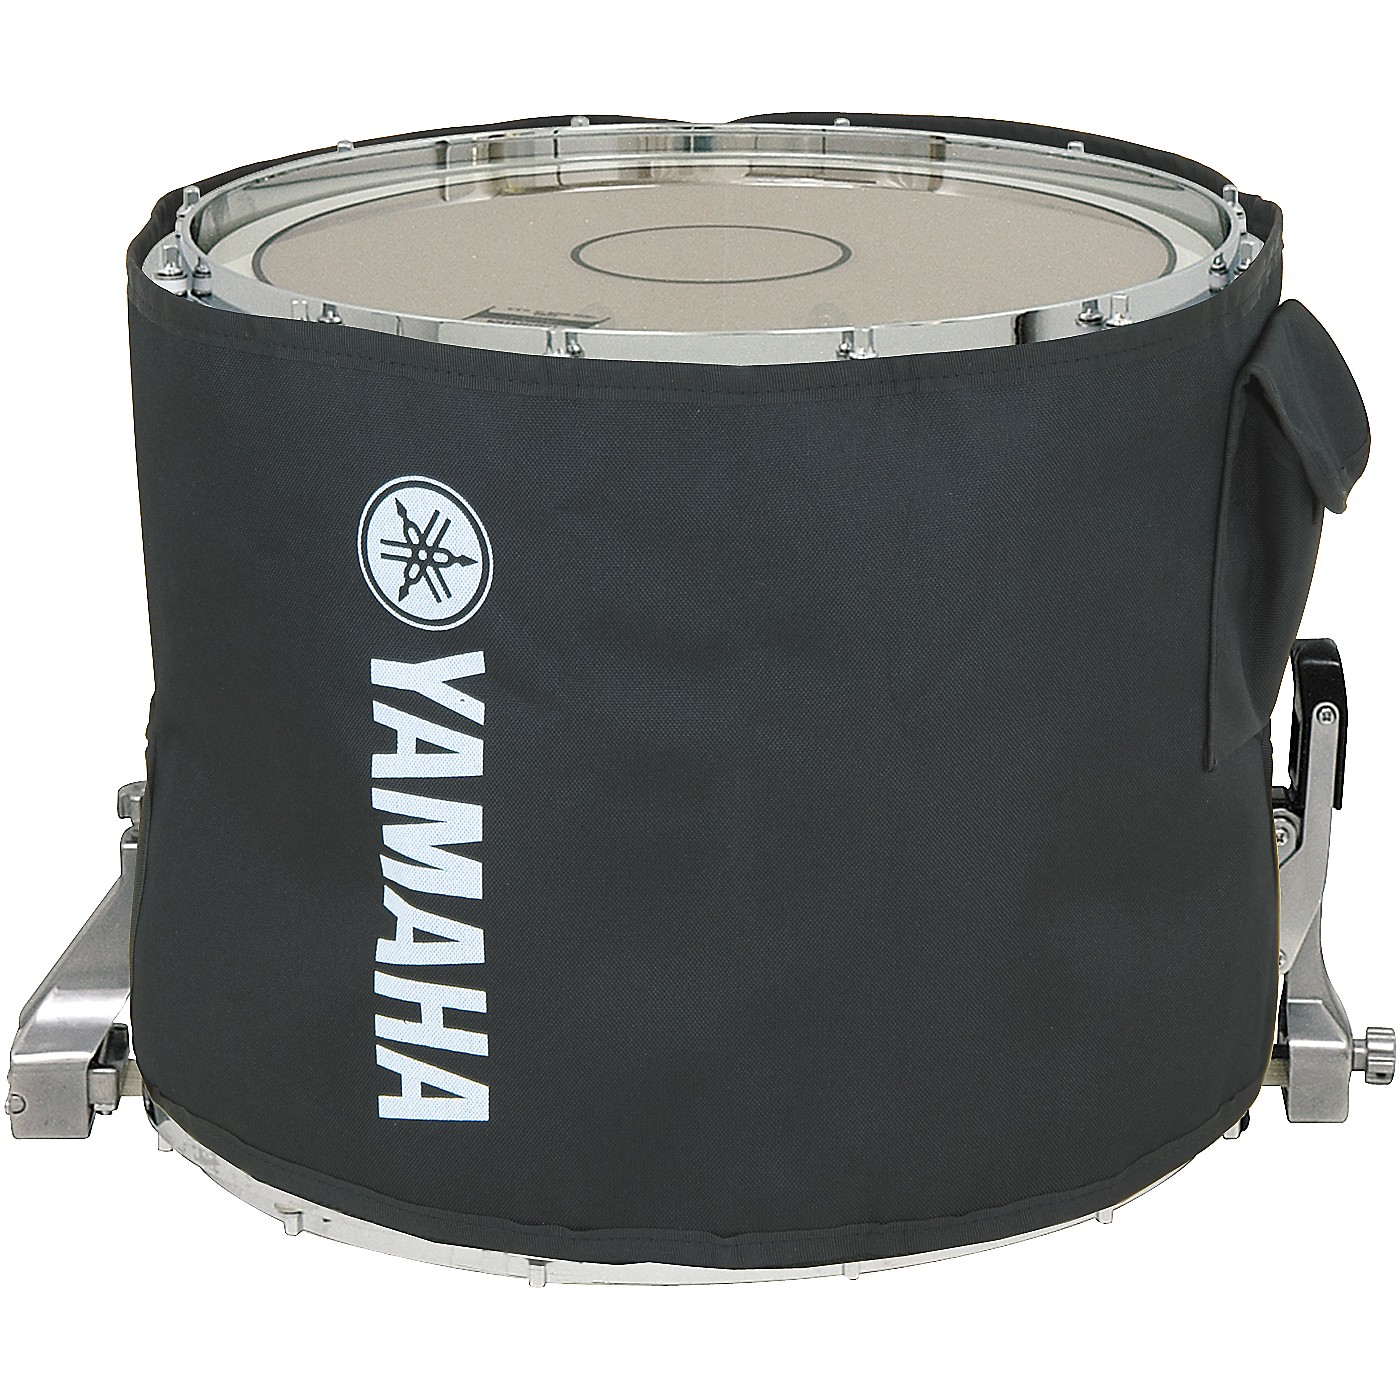 Yamaha Marching Snare Drum Cover thumbnail